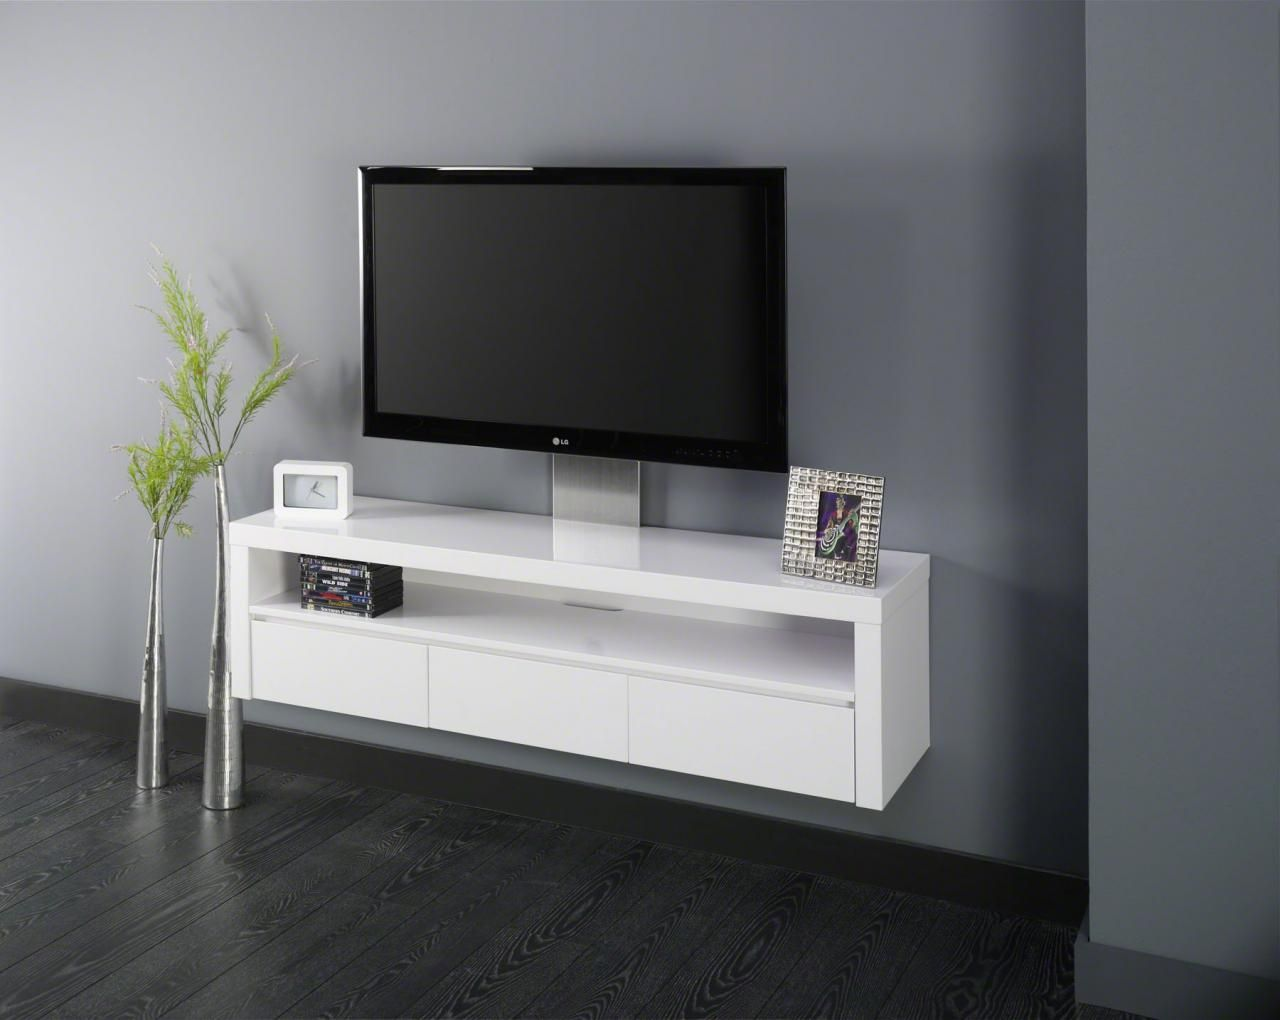 Meubles Tv Meuble Tv Hi Fi Design Suspendu Serena 3 Tiroirs  # Meuble Tv Pivotant Design